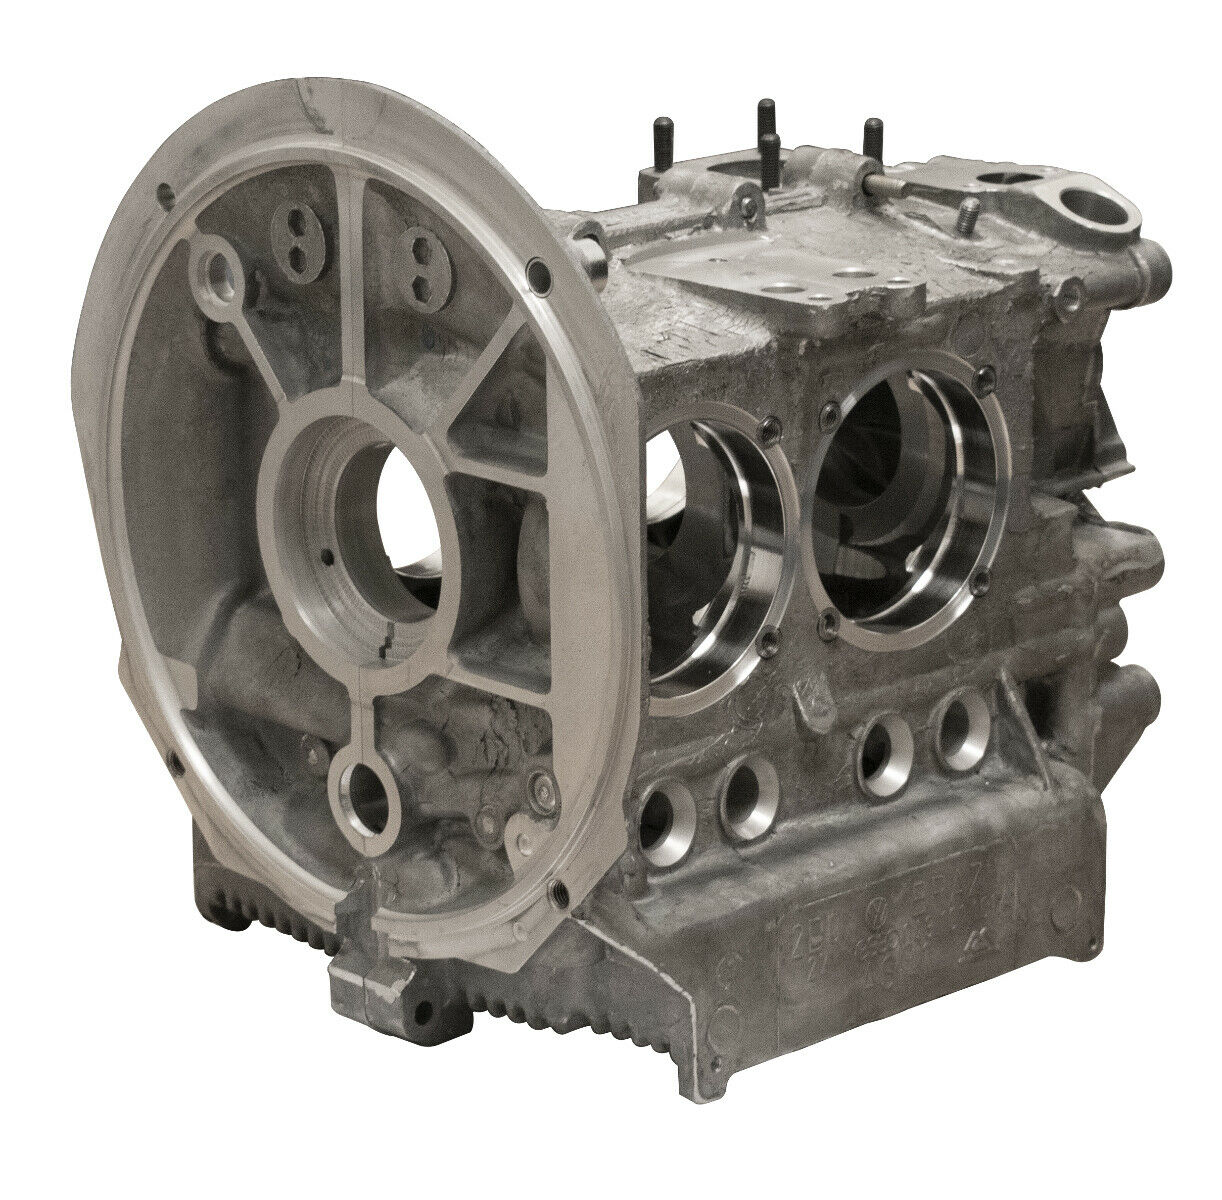 Big Bore 94mm Engine Case - Autolinea Magnesium